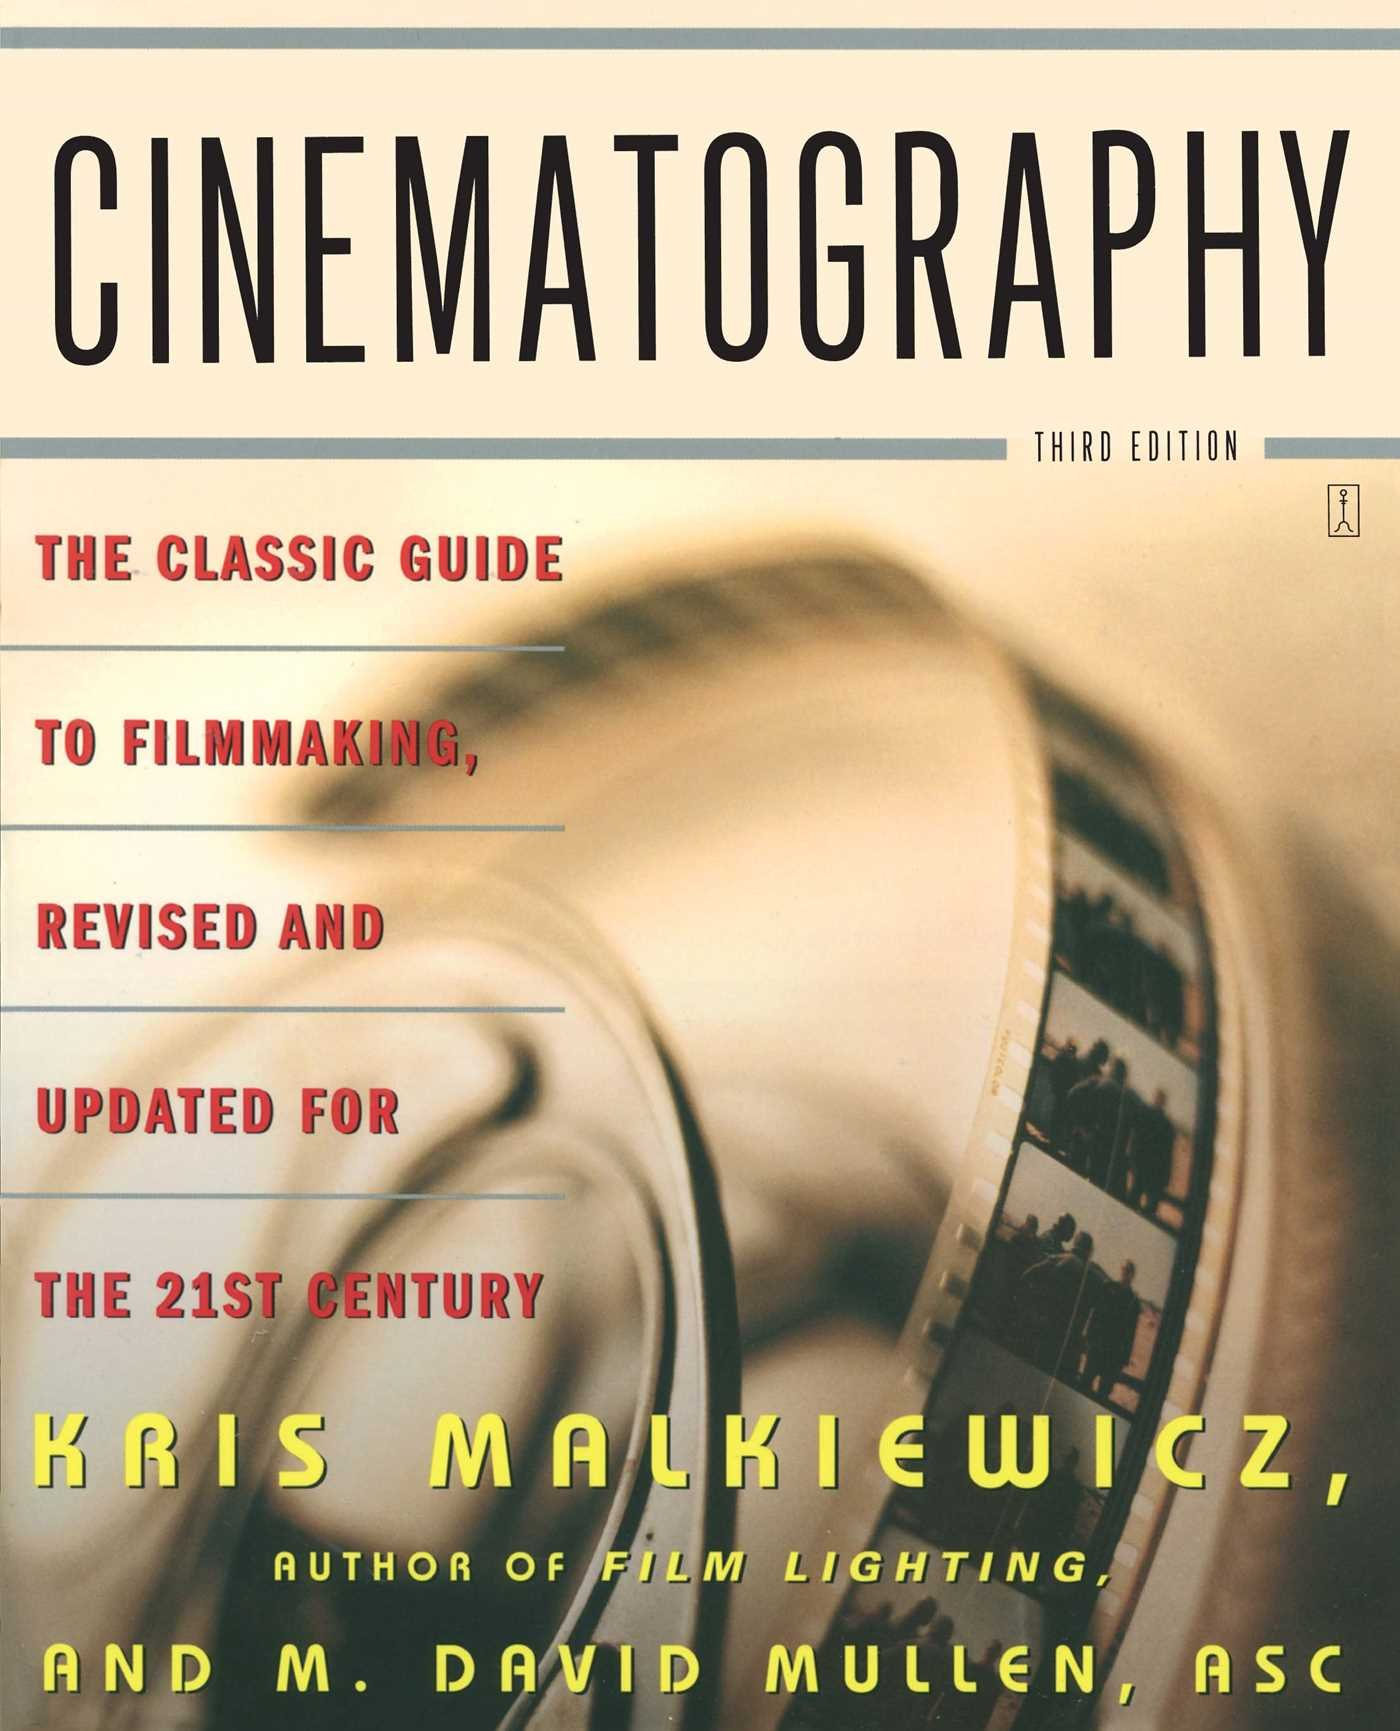 Cinematography third edition the classic guide to filmmaking cinematography third edition the classic guide to filmmaking revised and updated for the 21st century amazon kris malkiewicz m david mullen fandeluxe Choice Image